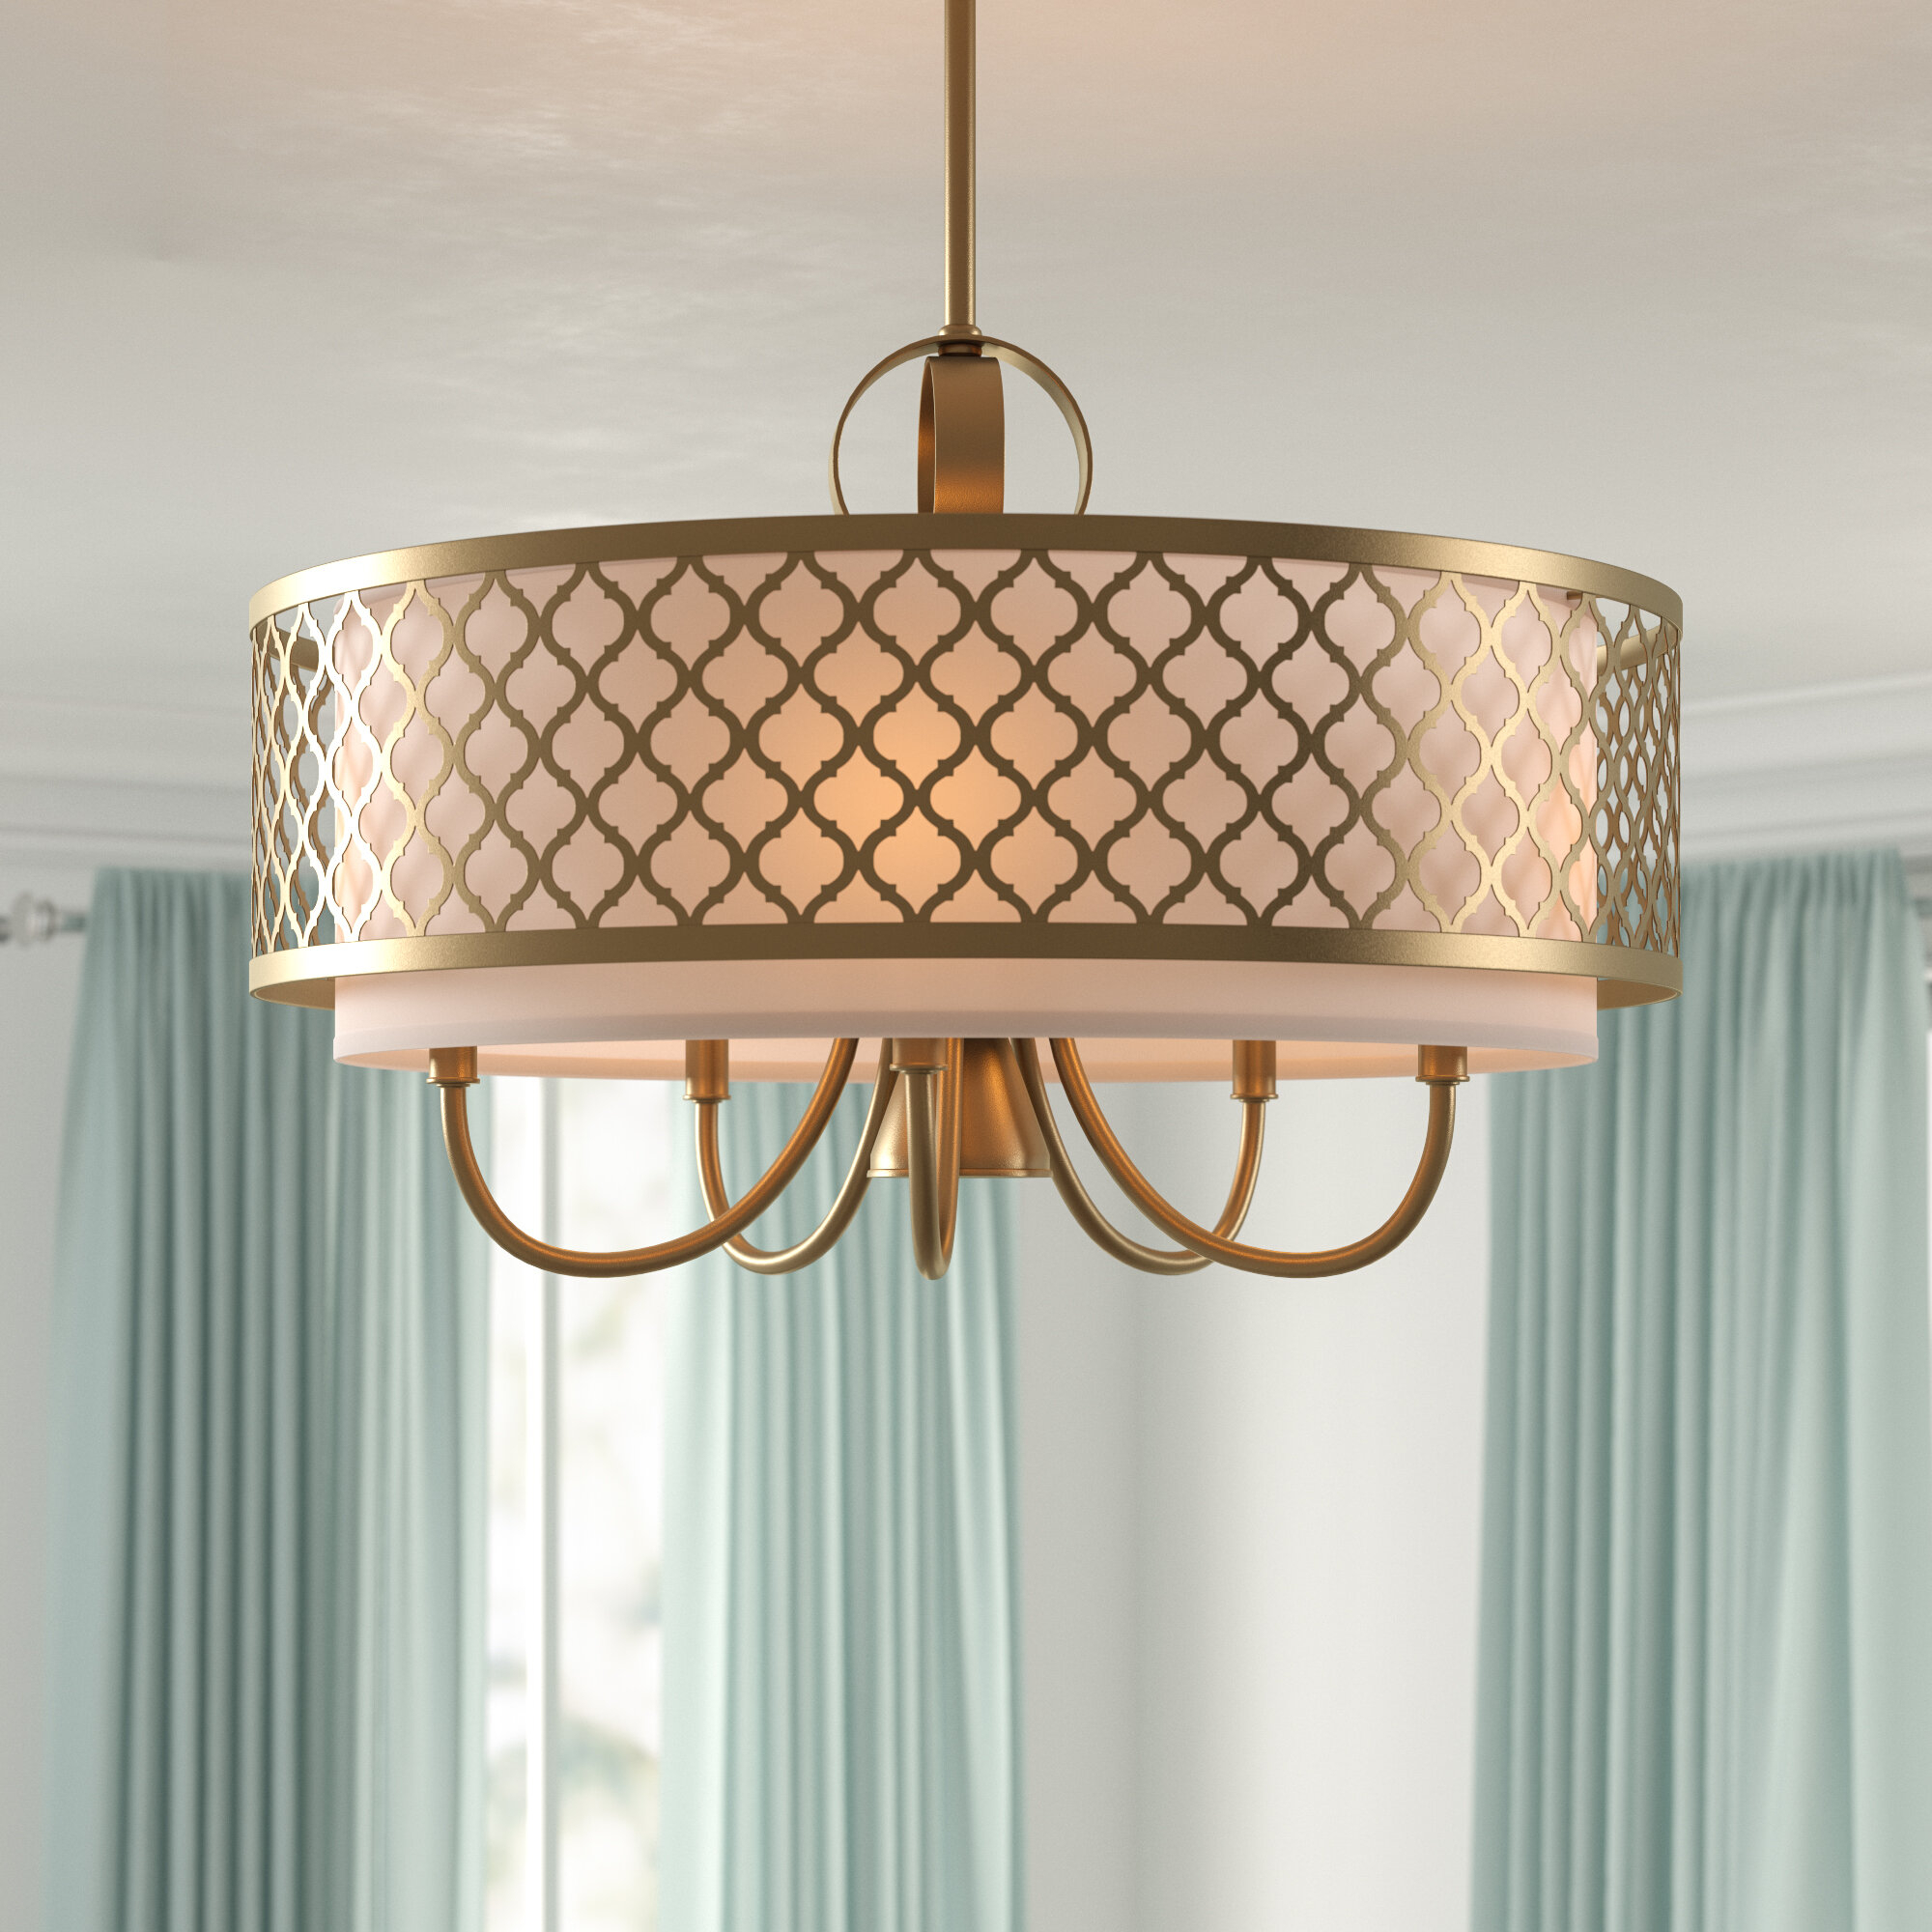 Tymvou 6 Light Drum Chandelier Pertaining To Wadlington 6 Light Single Cylinder Pendants (View 6 of 30)